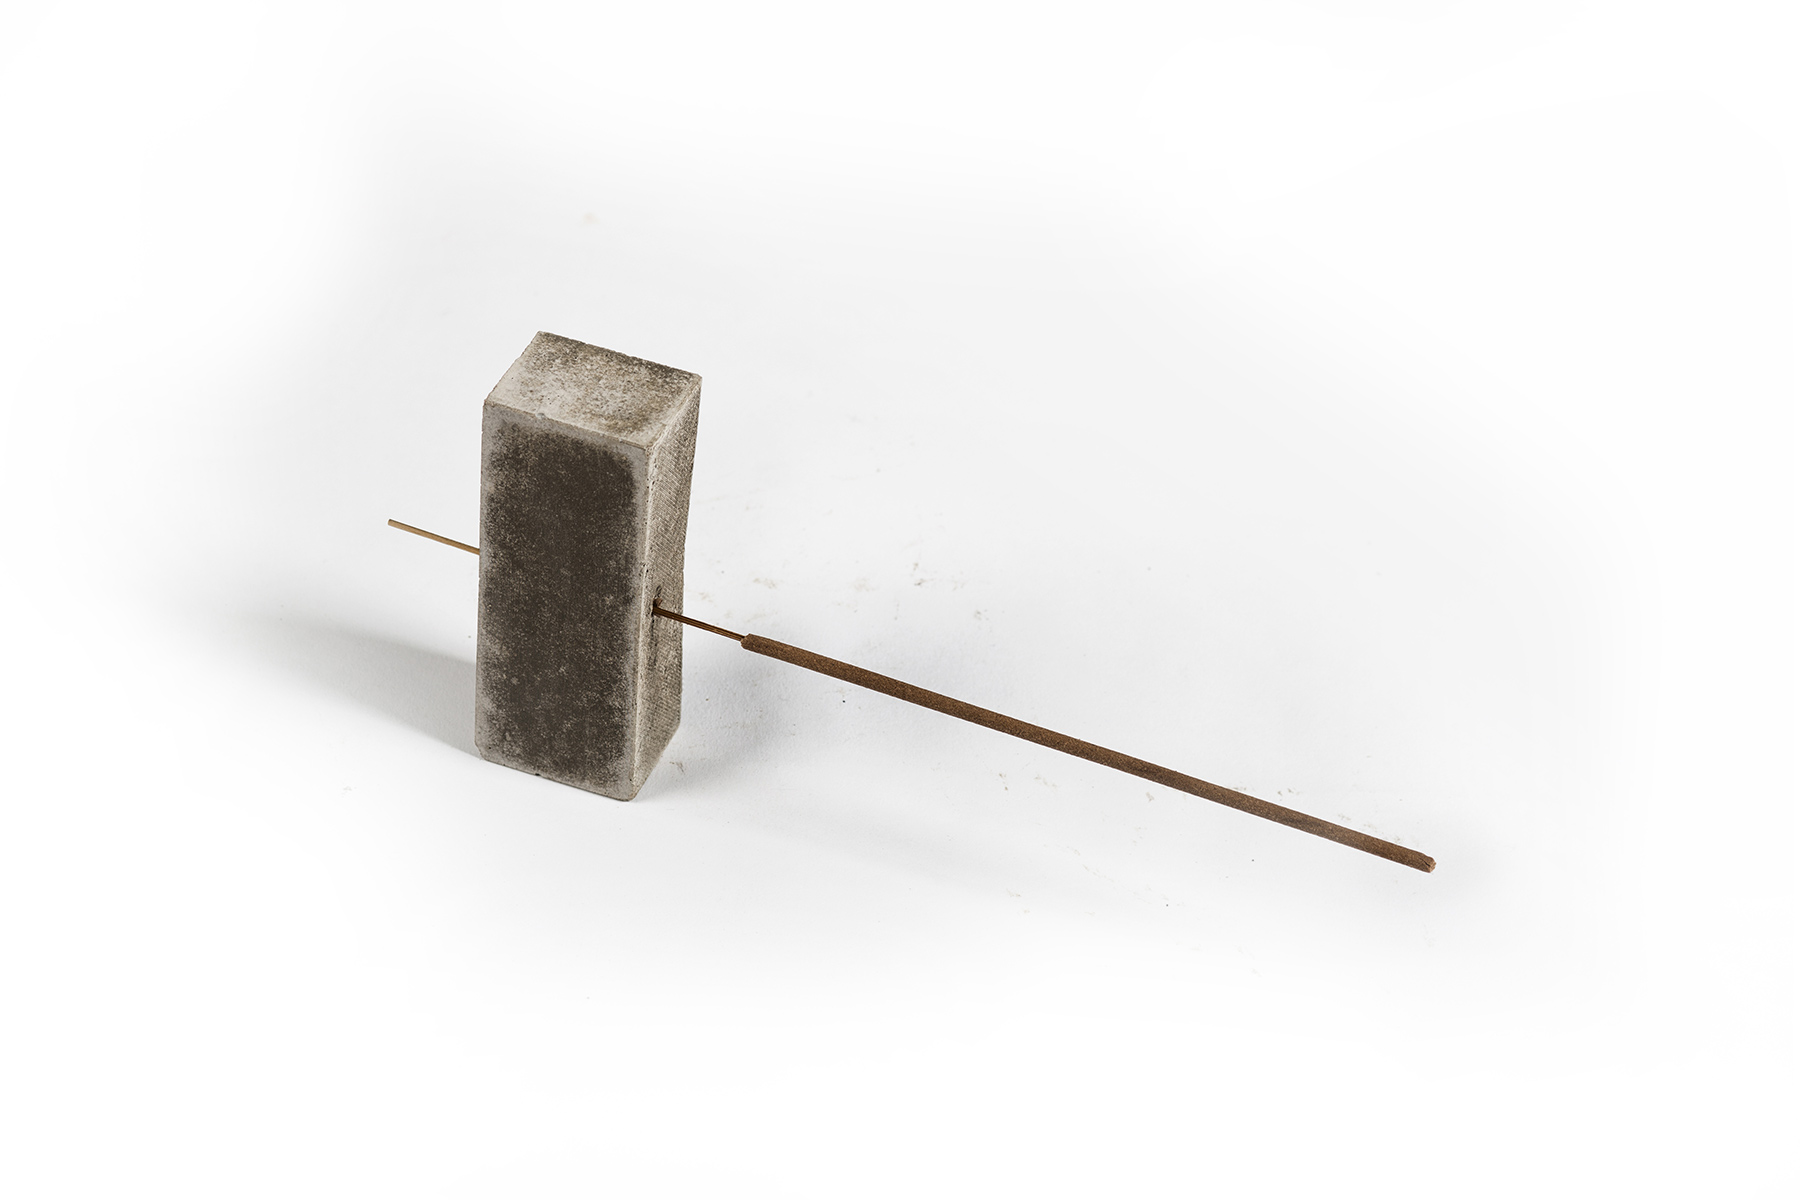 A-COLD-WALL* Samuel Ross Jobe Burns Concrete Objects Incense Cement Cup Holder